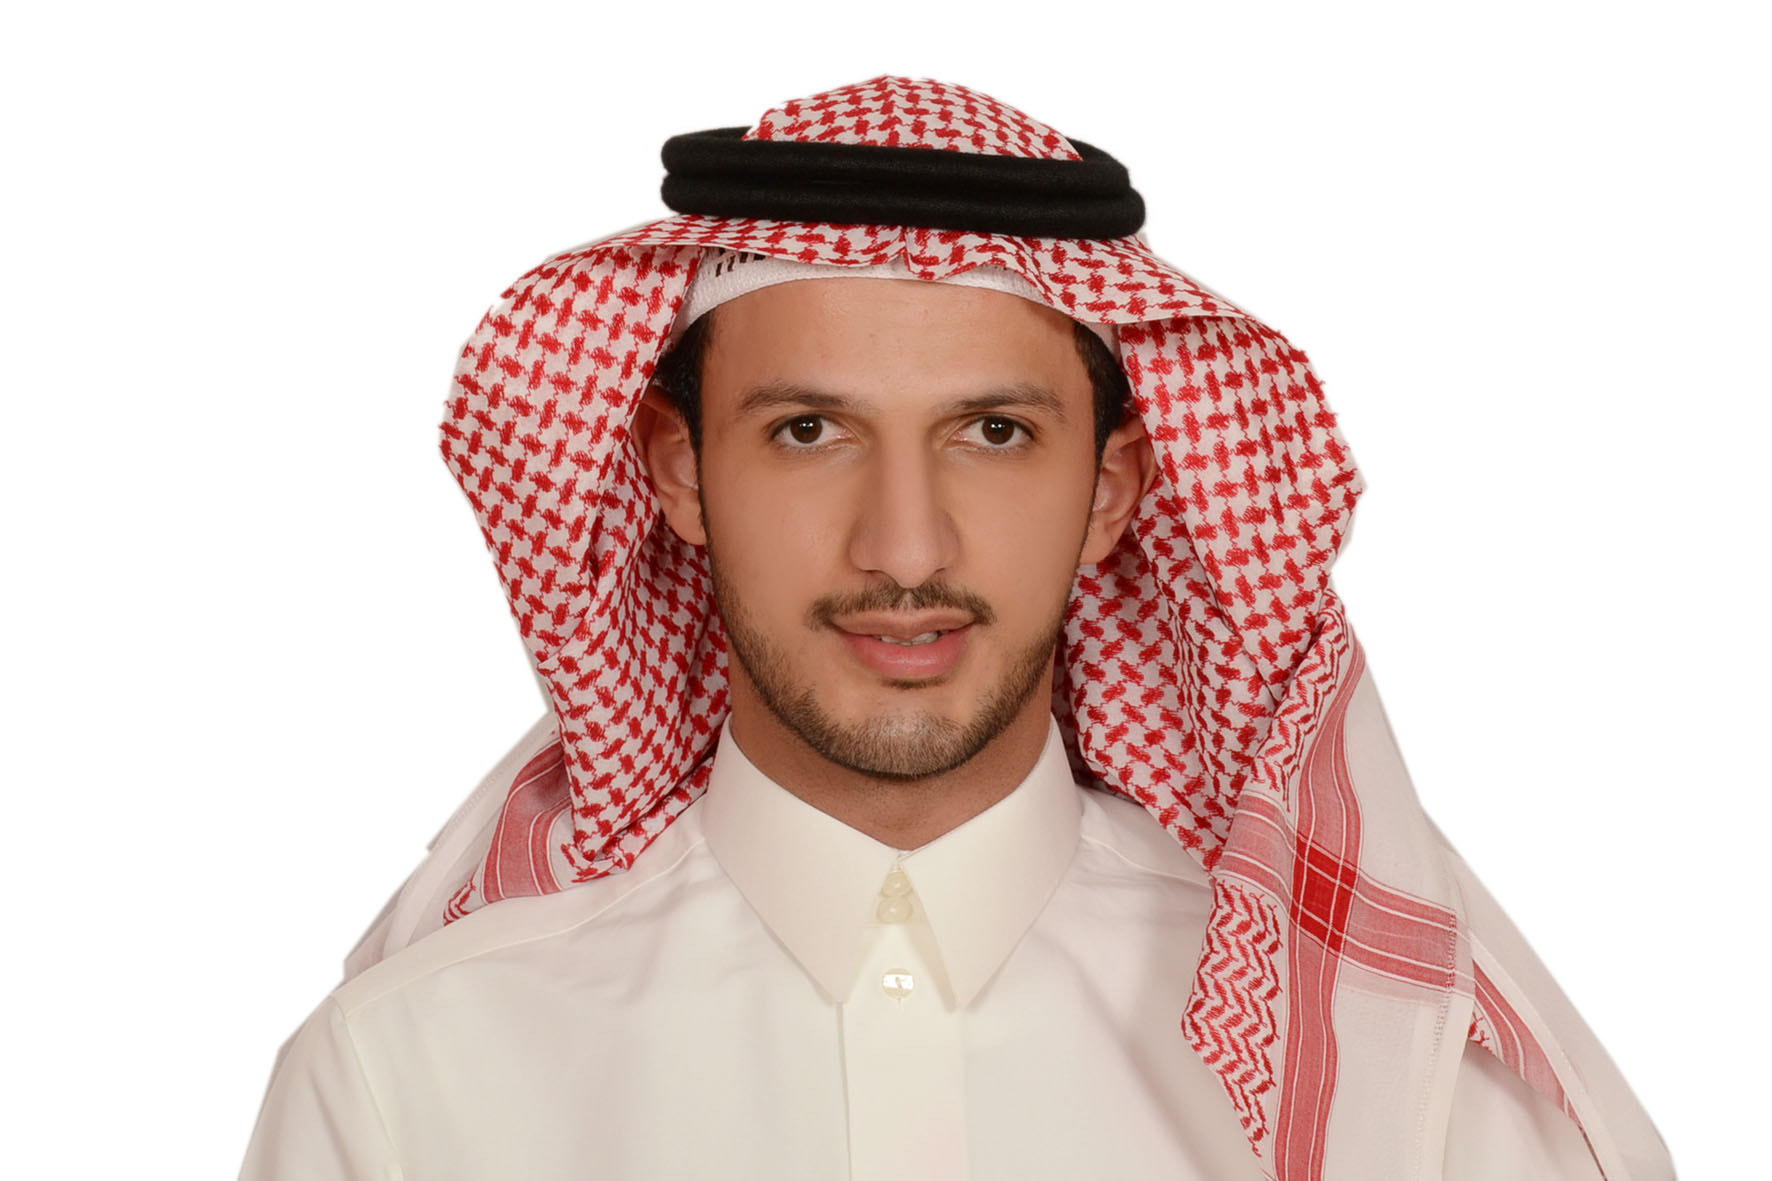 Mr. Ibrahim Mohammed Alruways Profile Image